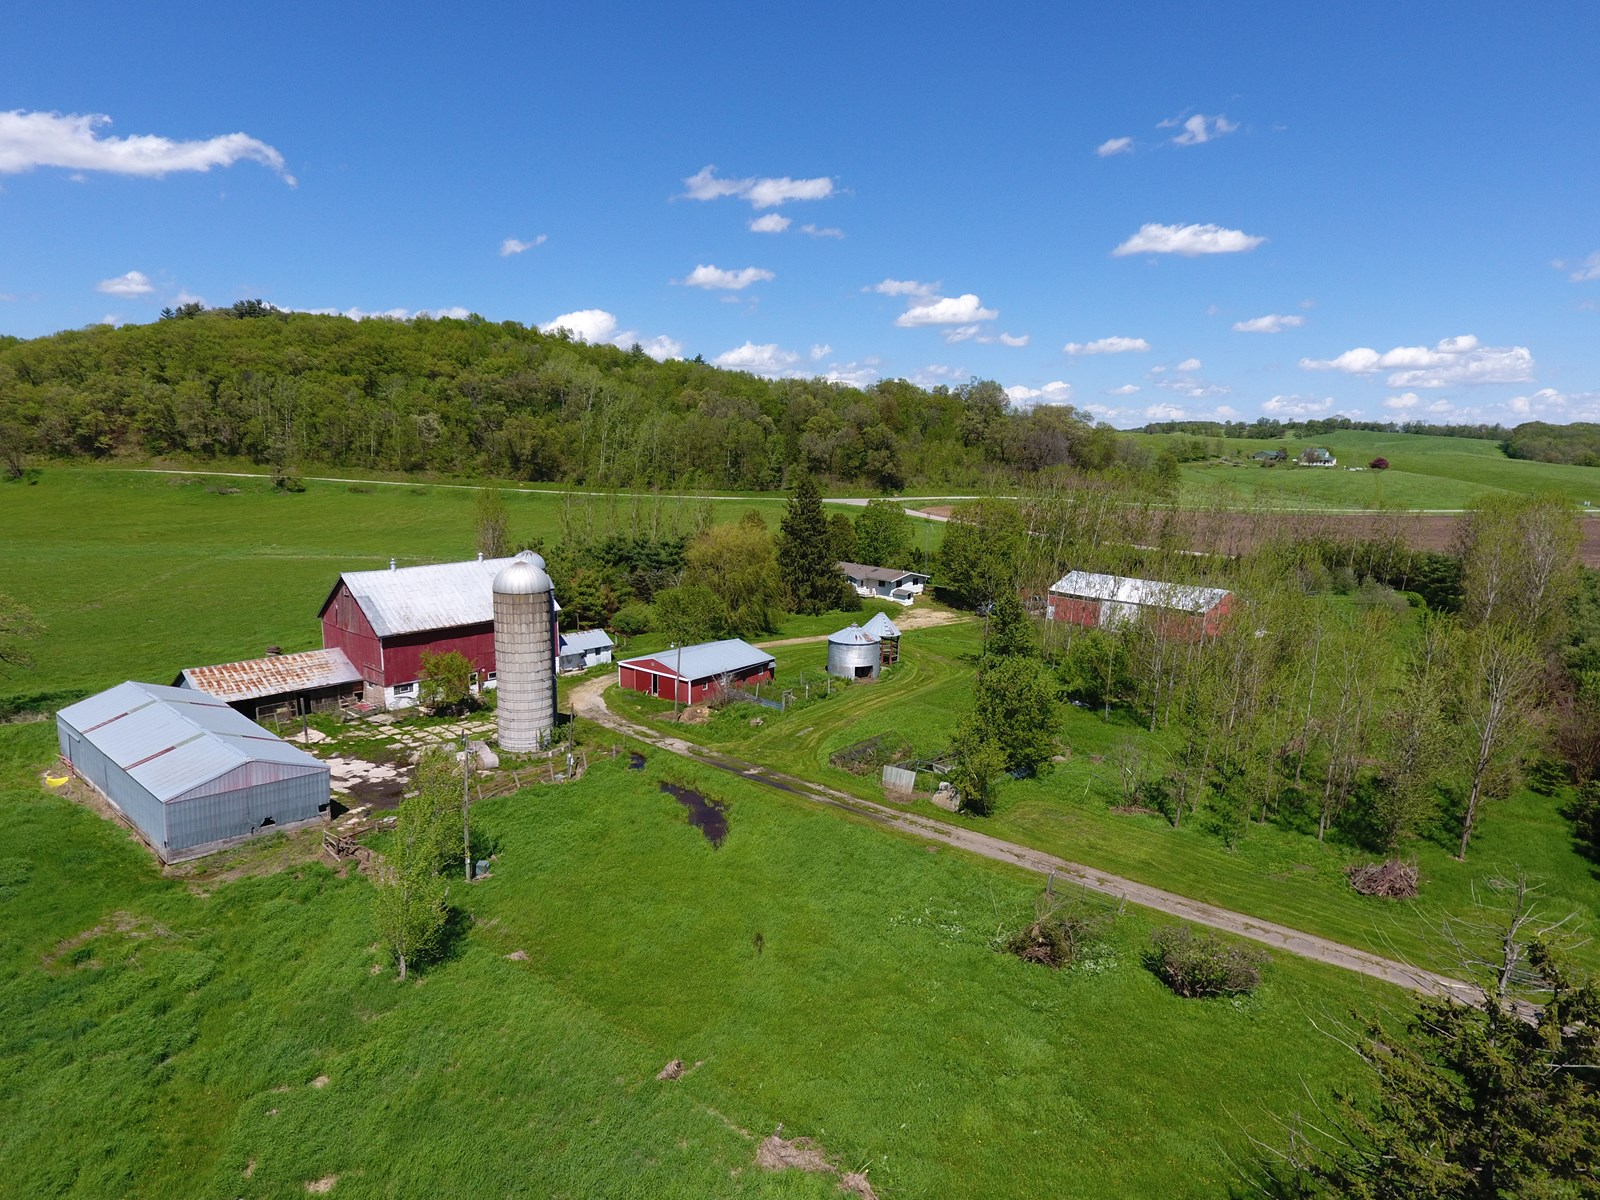 Country Home/Hobby Farm For Sale in SW Wisconsin